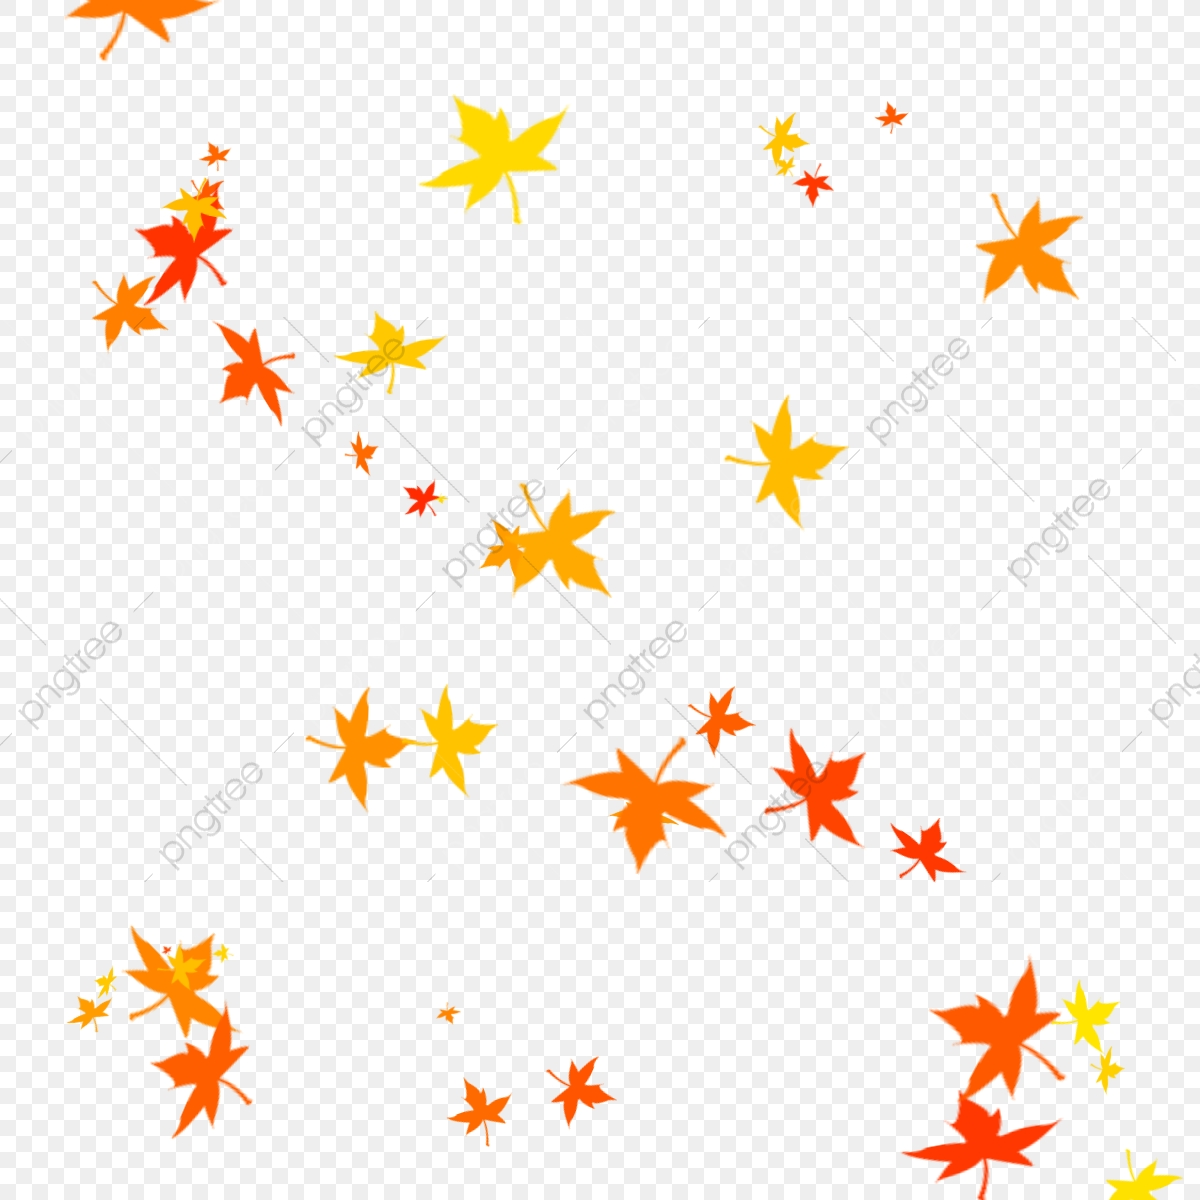 Falling Yellow Leaf, Falling Leaf Png, Leaf Png Clipart, Fall Leaves.